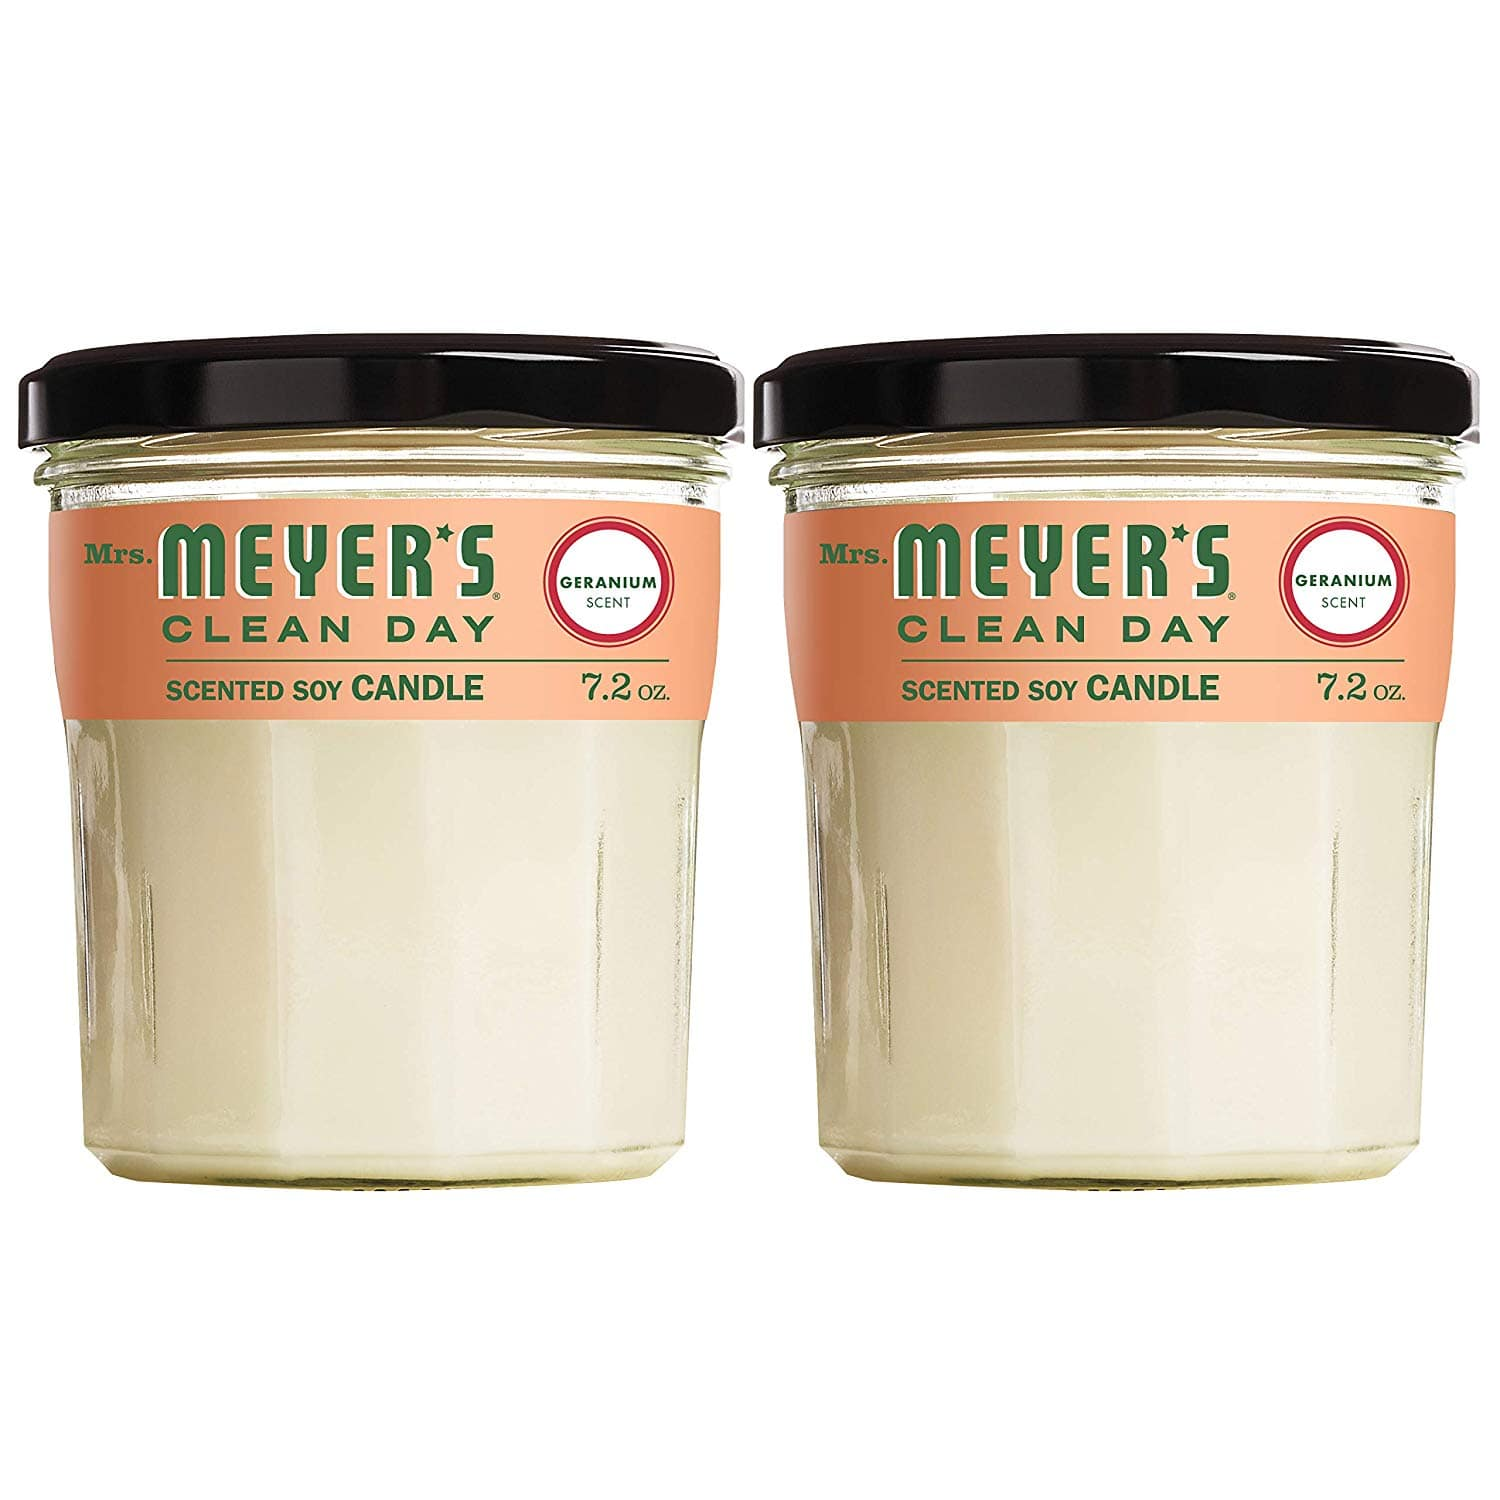 2-Pack Mrs. Meyers Clean Day Scented Soy Candle (Geranium or Lemon Verbana) Large, 7.2 Ounce From $11.01 5% or $9.54 15% & More AC w/s&s